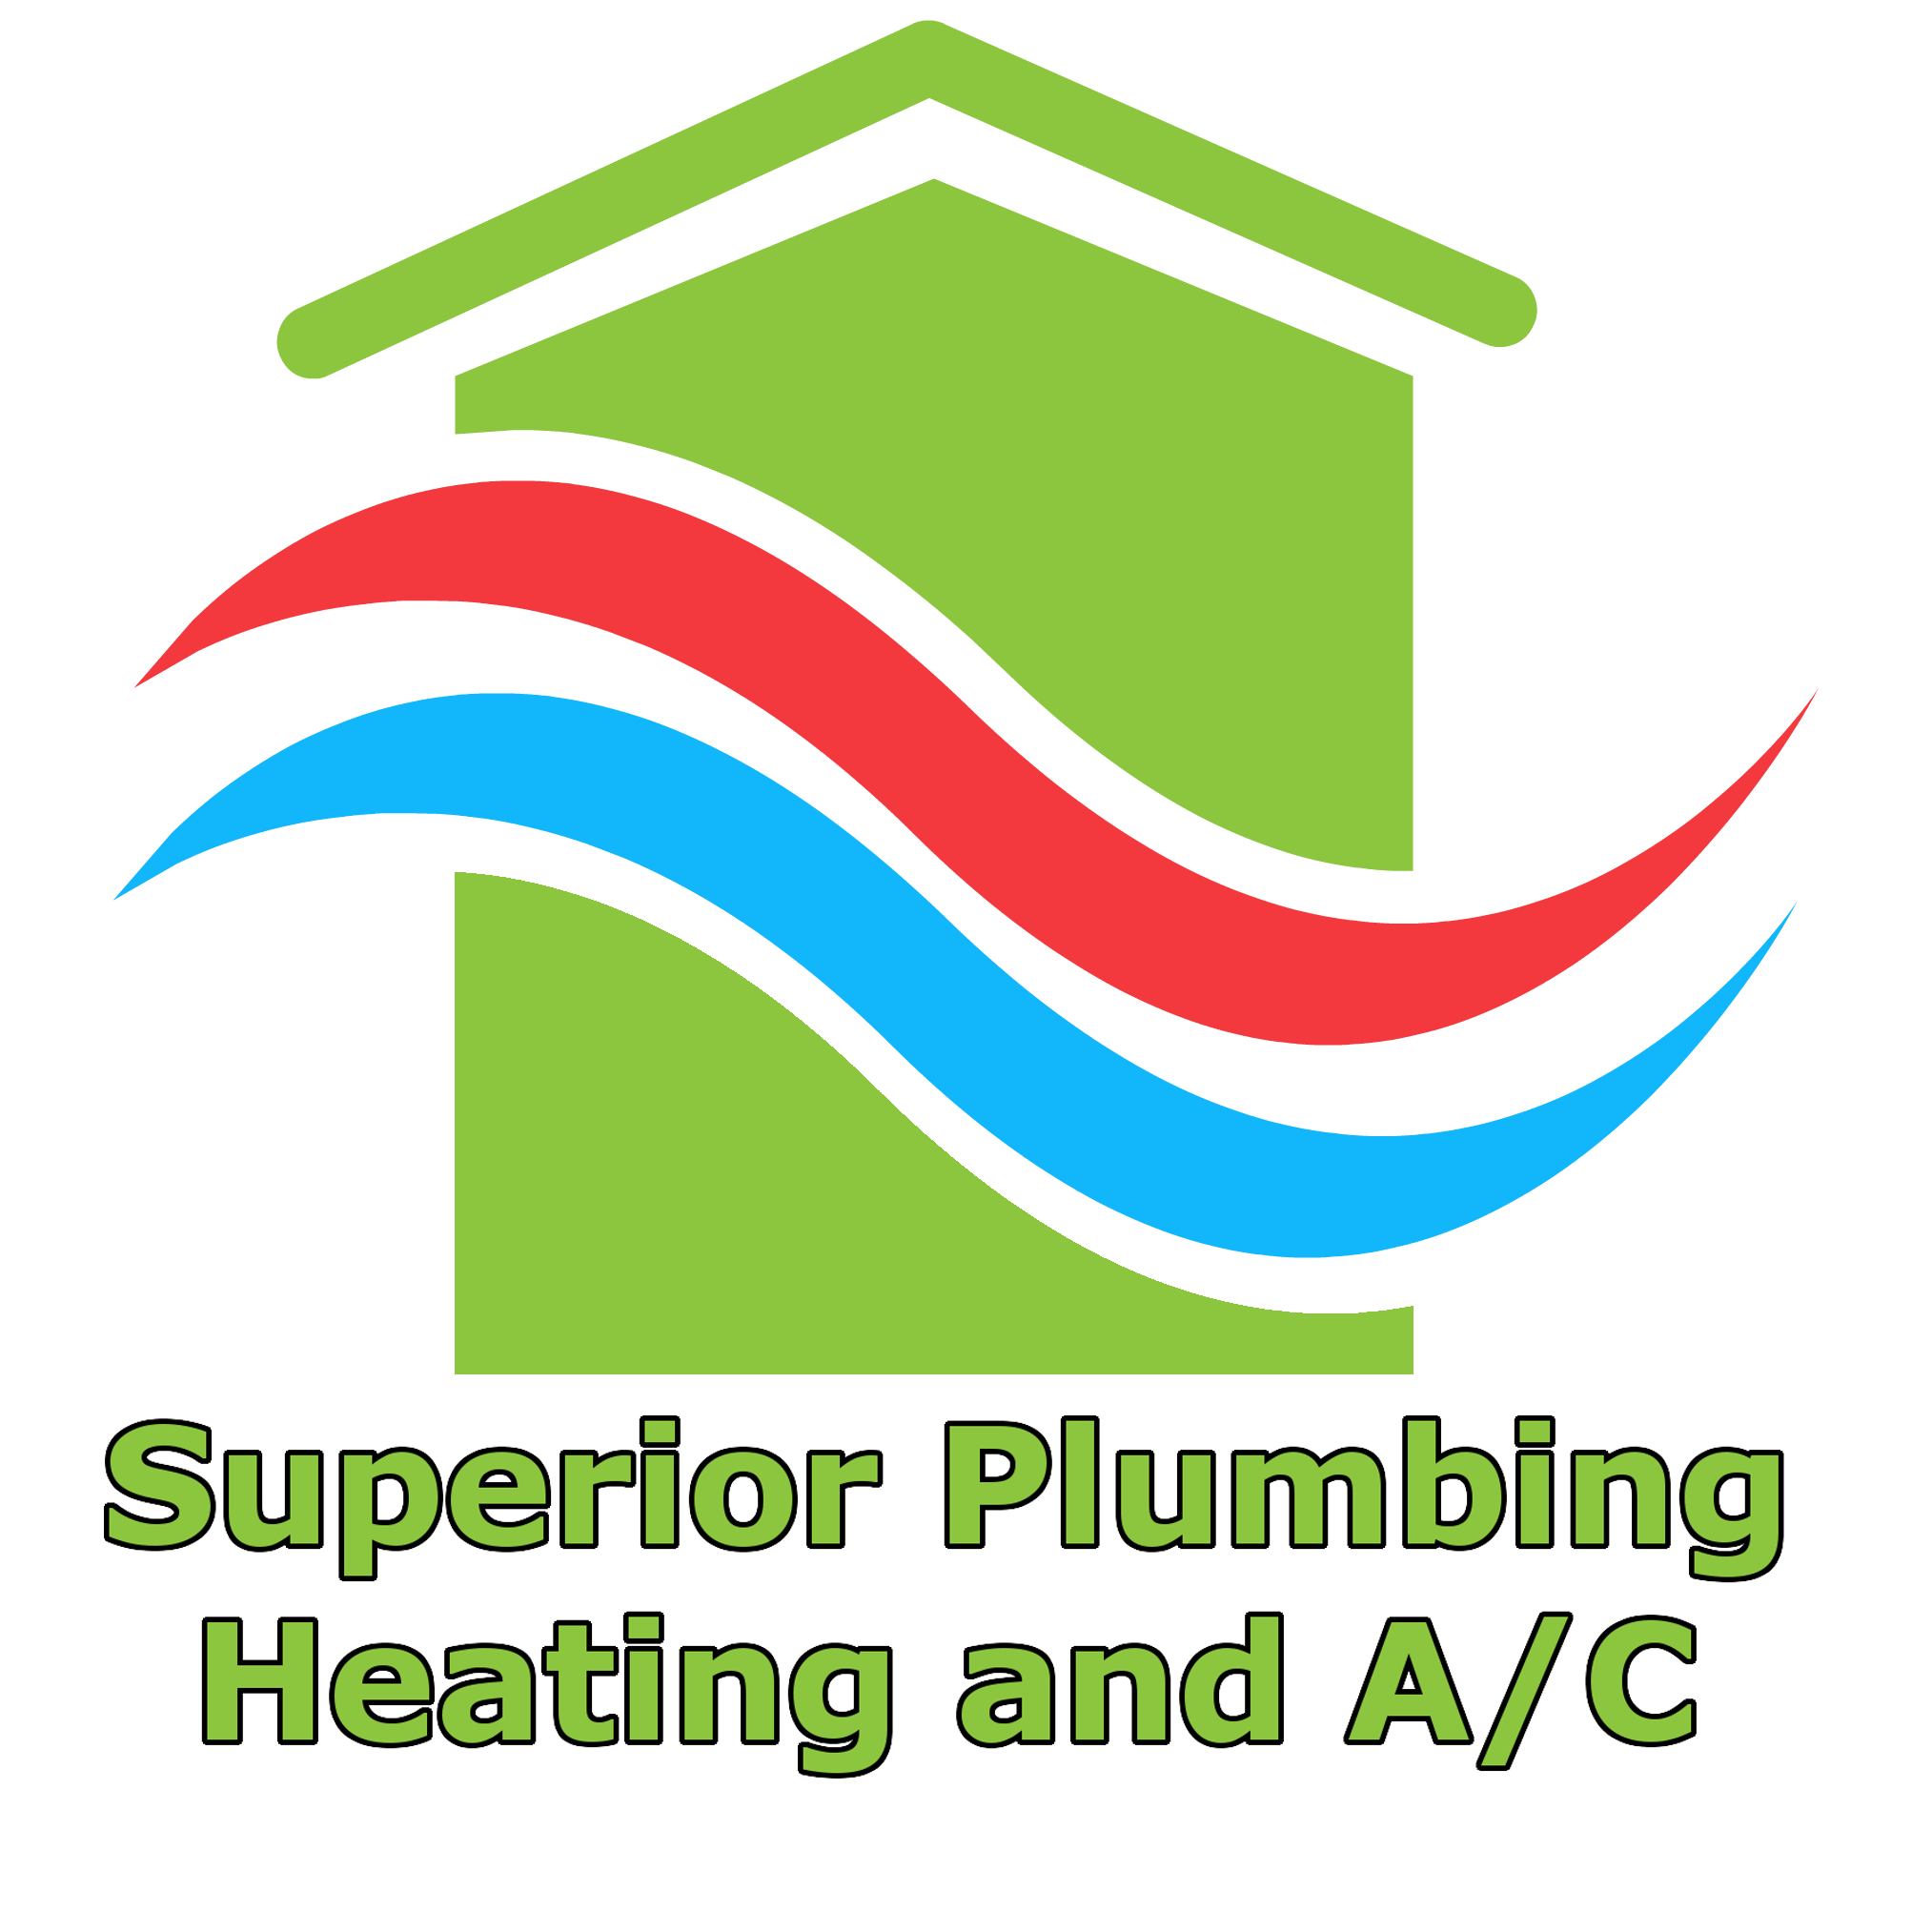 Superior Plumbing, Heating and A/C image 1